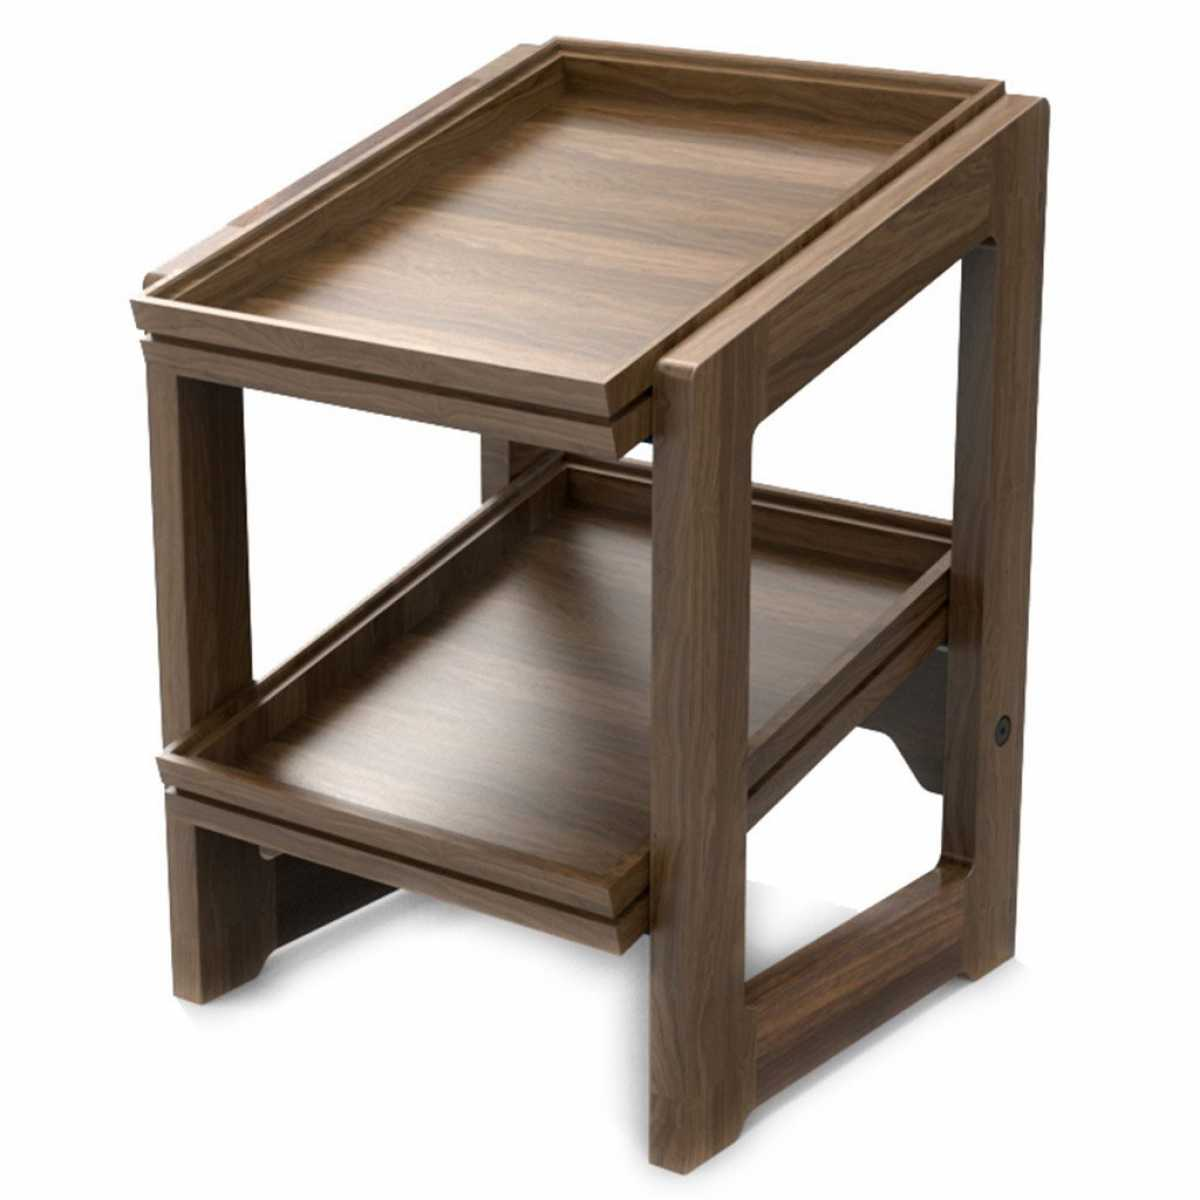 CRASTER Flow Walnut Stand Two Tier 1.2